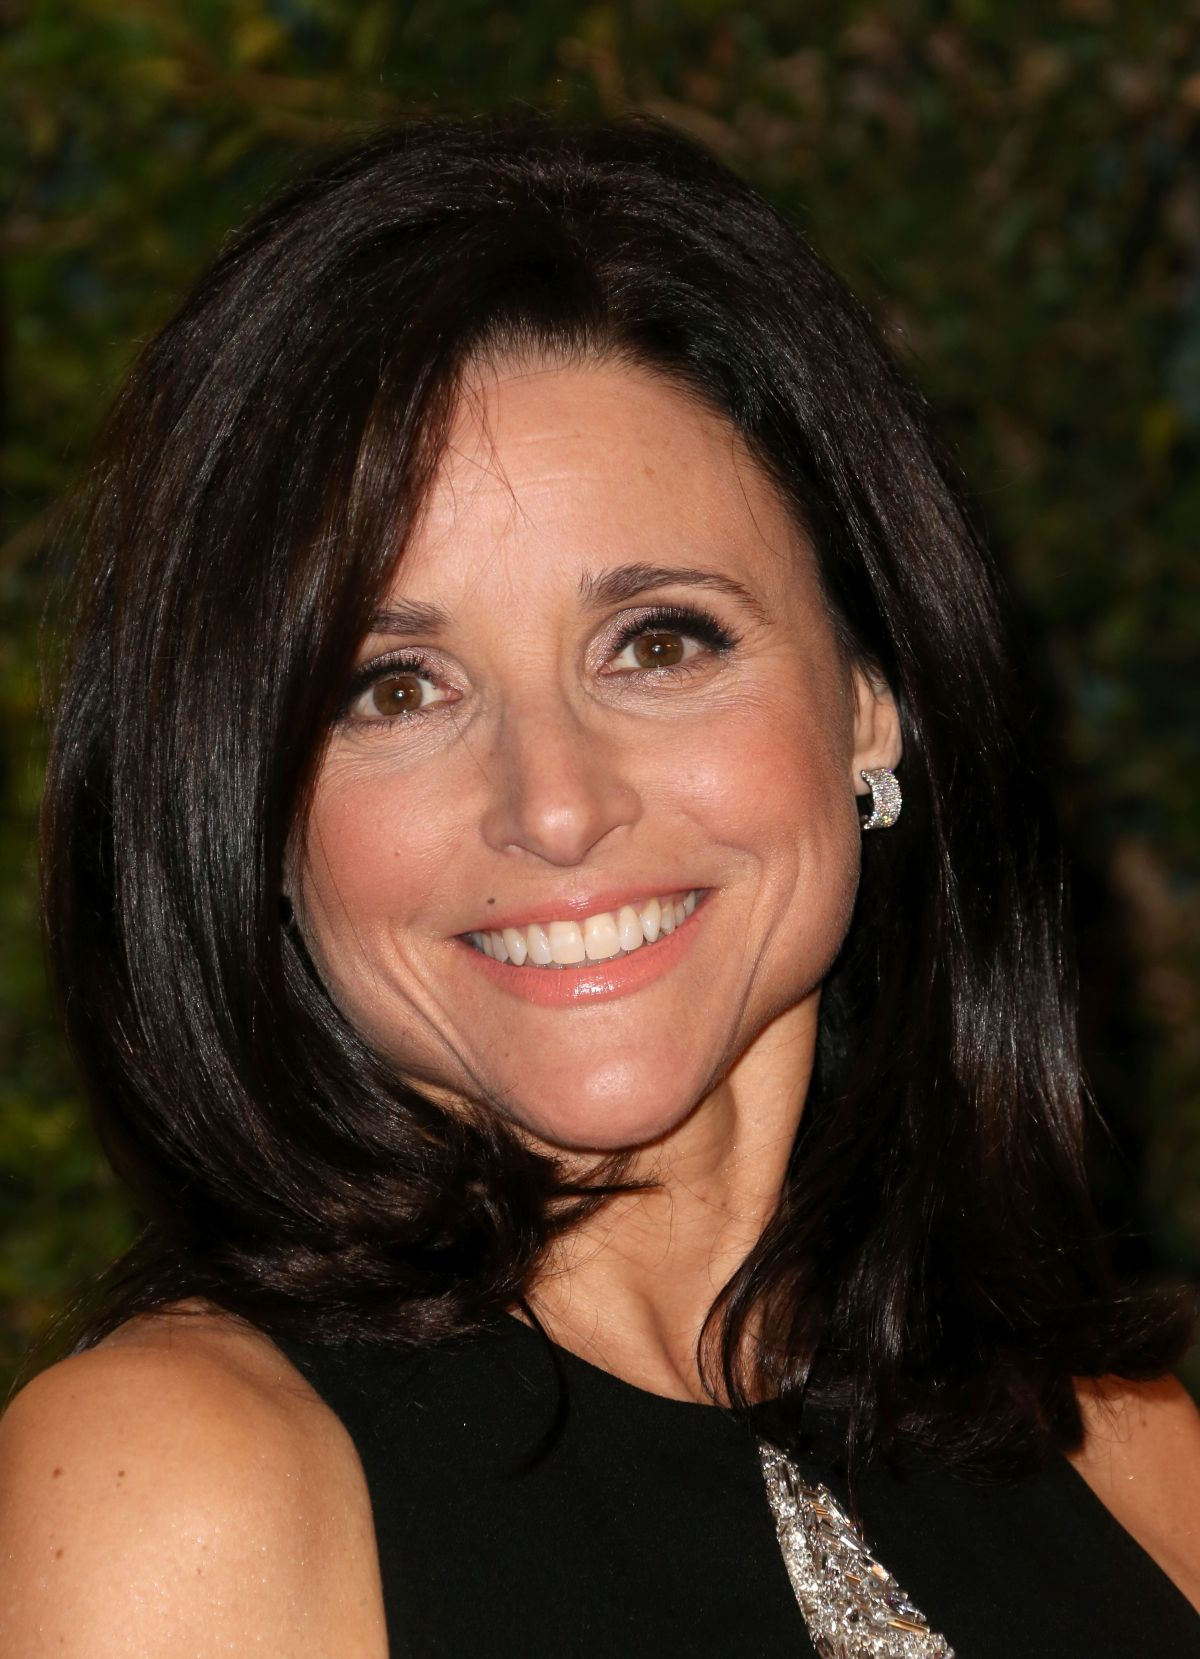 Julia Louis Dreyfus Body Weight Bra Size: Julia Louis-Dreyfus At The Academy Of Motion Picture Arts